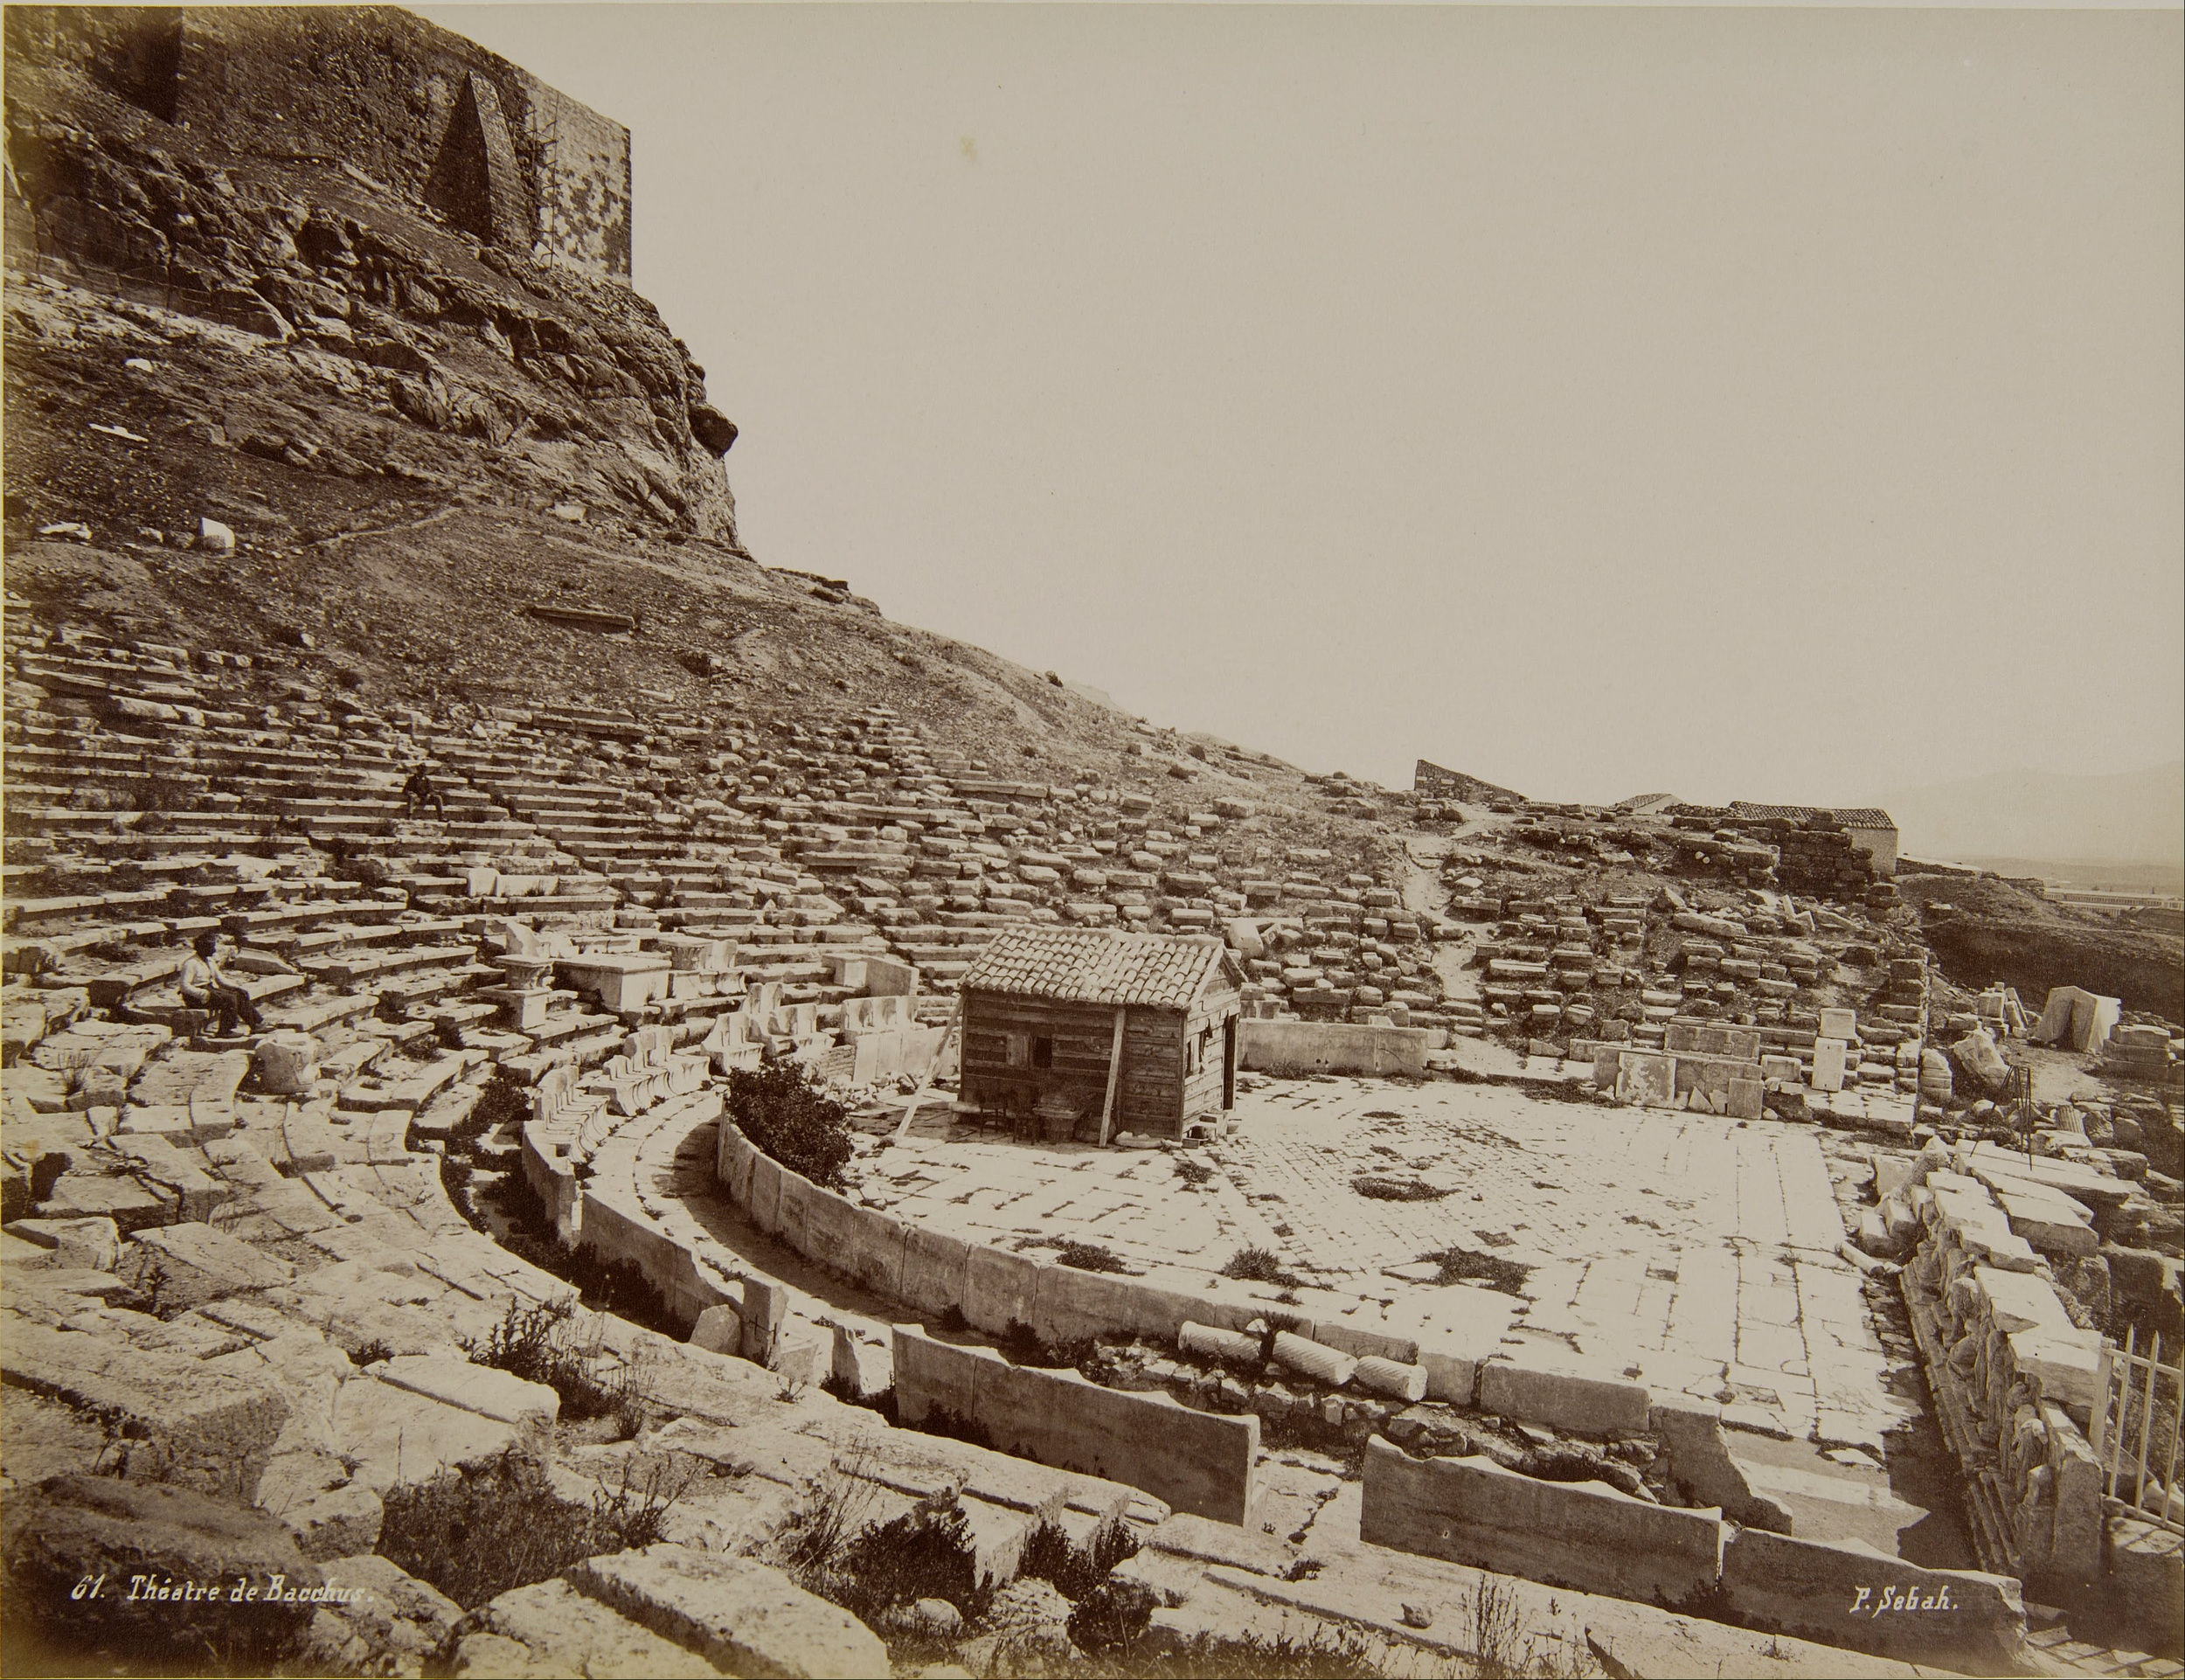 A picture of the theatre of Dionysus in Athens taken in 1870 by Sebah Pascal (1823 - 1886)